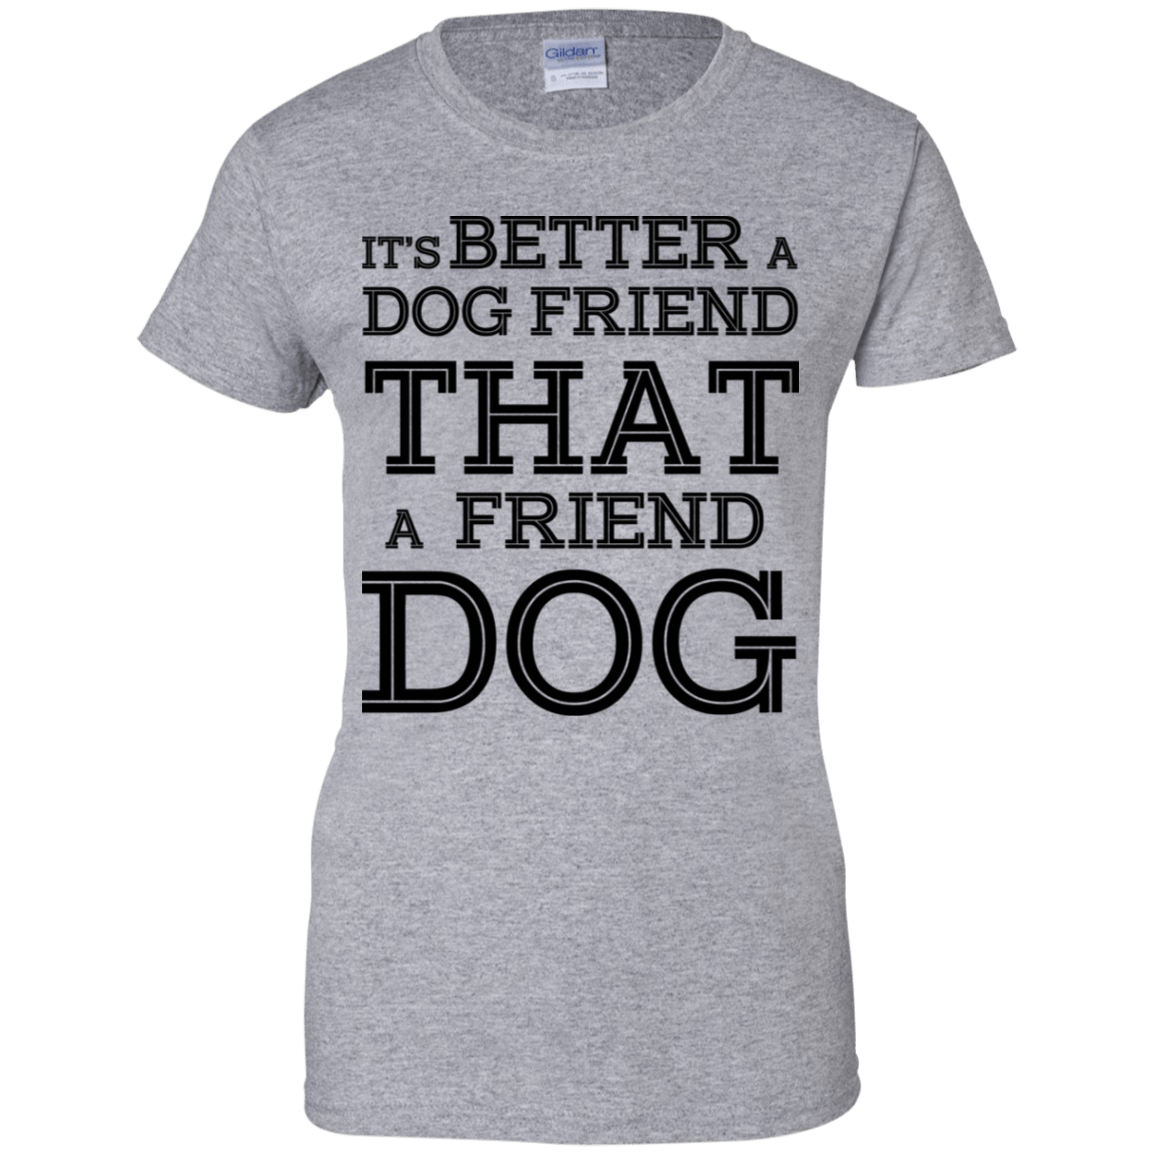 It's Better A Dog Friend That A Friend Dog 939-9265-73564858-44821 - Tee Ript